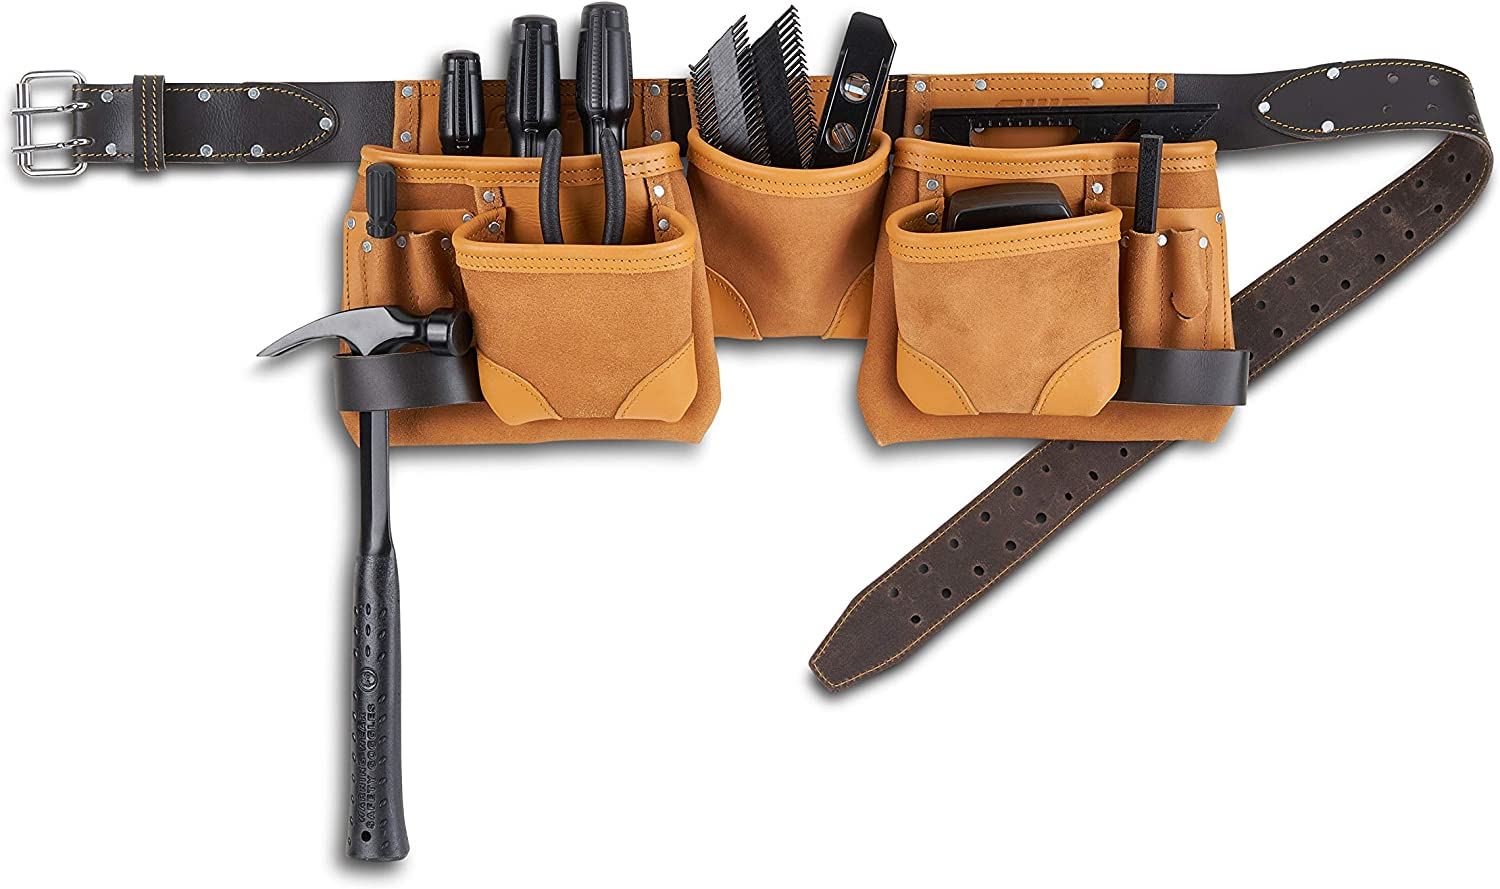 AWP Construction Leather Tool Apron | Classic leather tool apron - LT-428-2